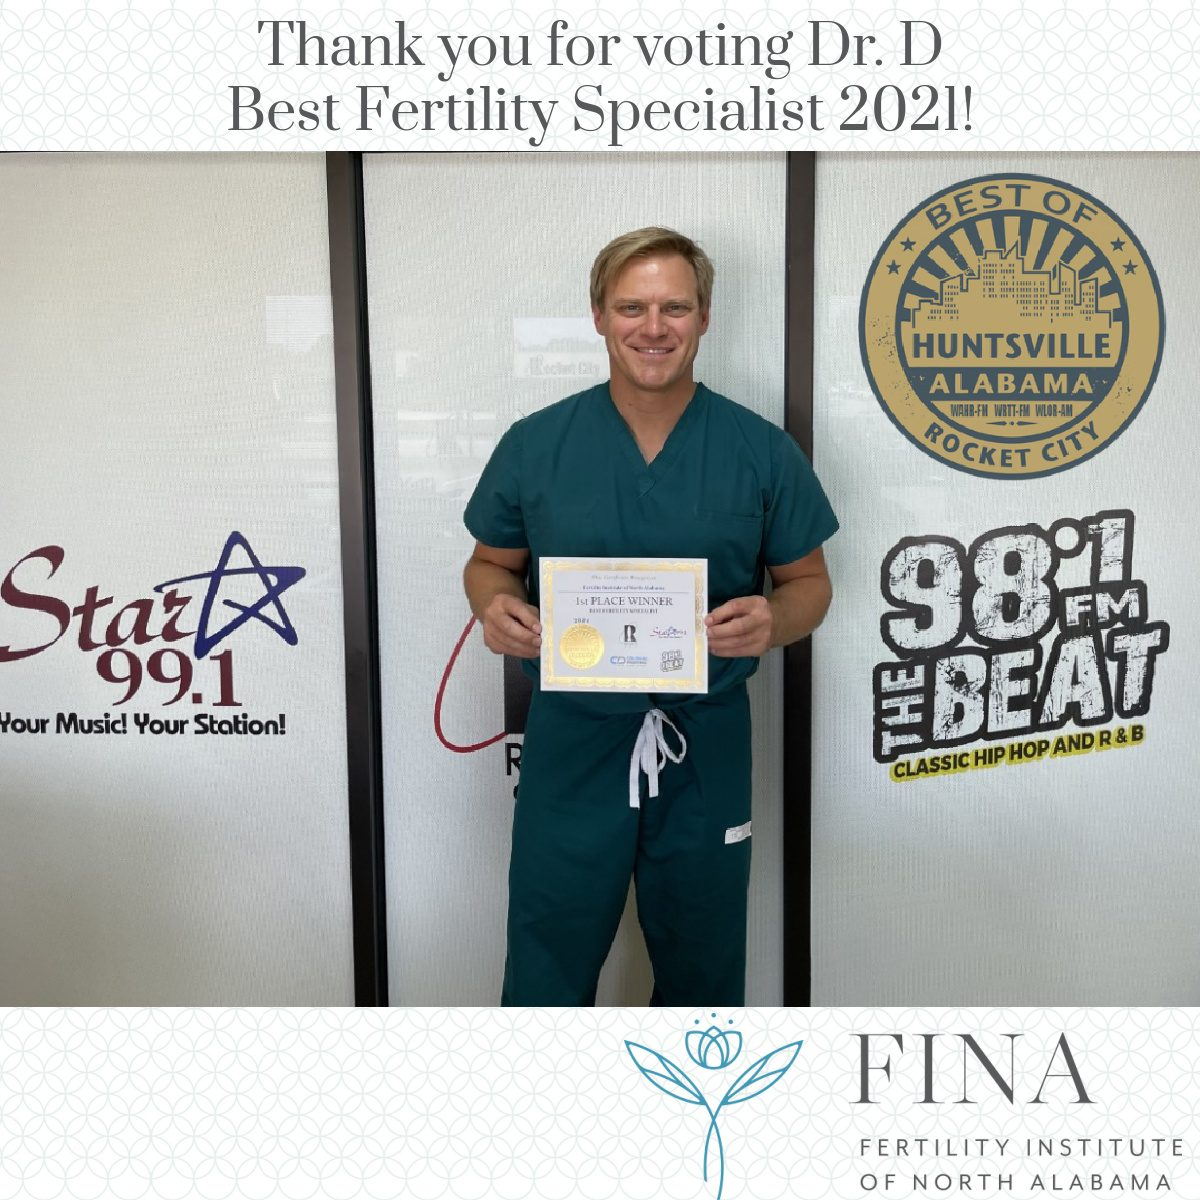 Thank you for voting us Best Fertility Specialist 2021!